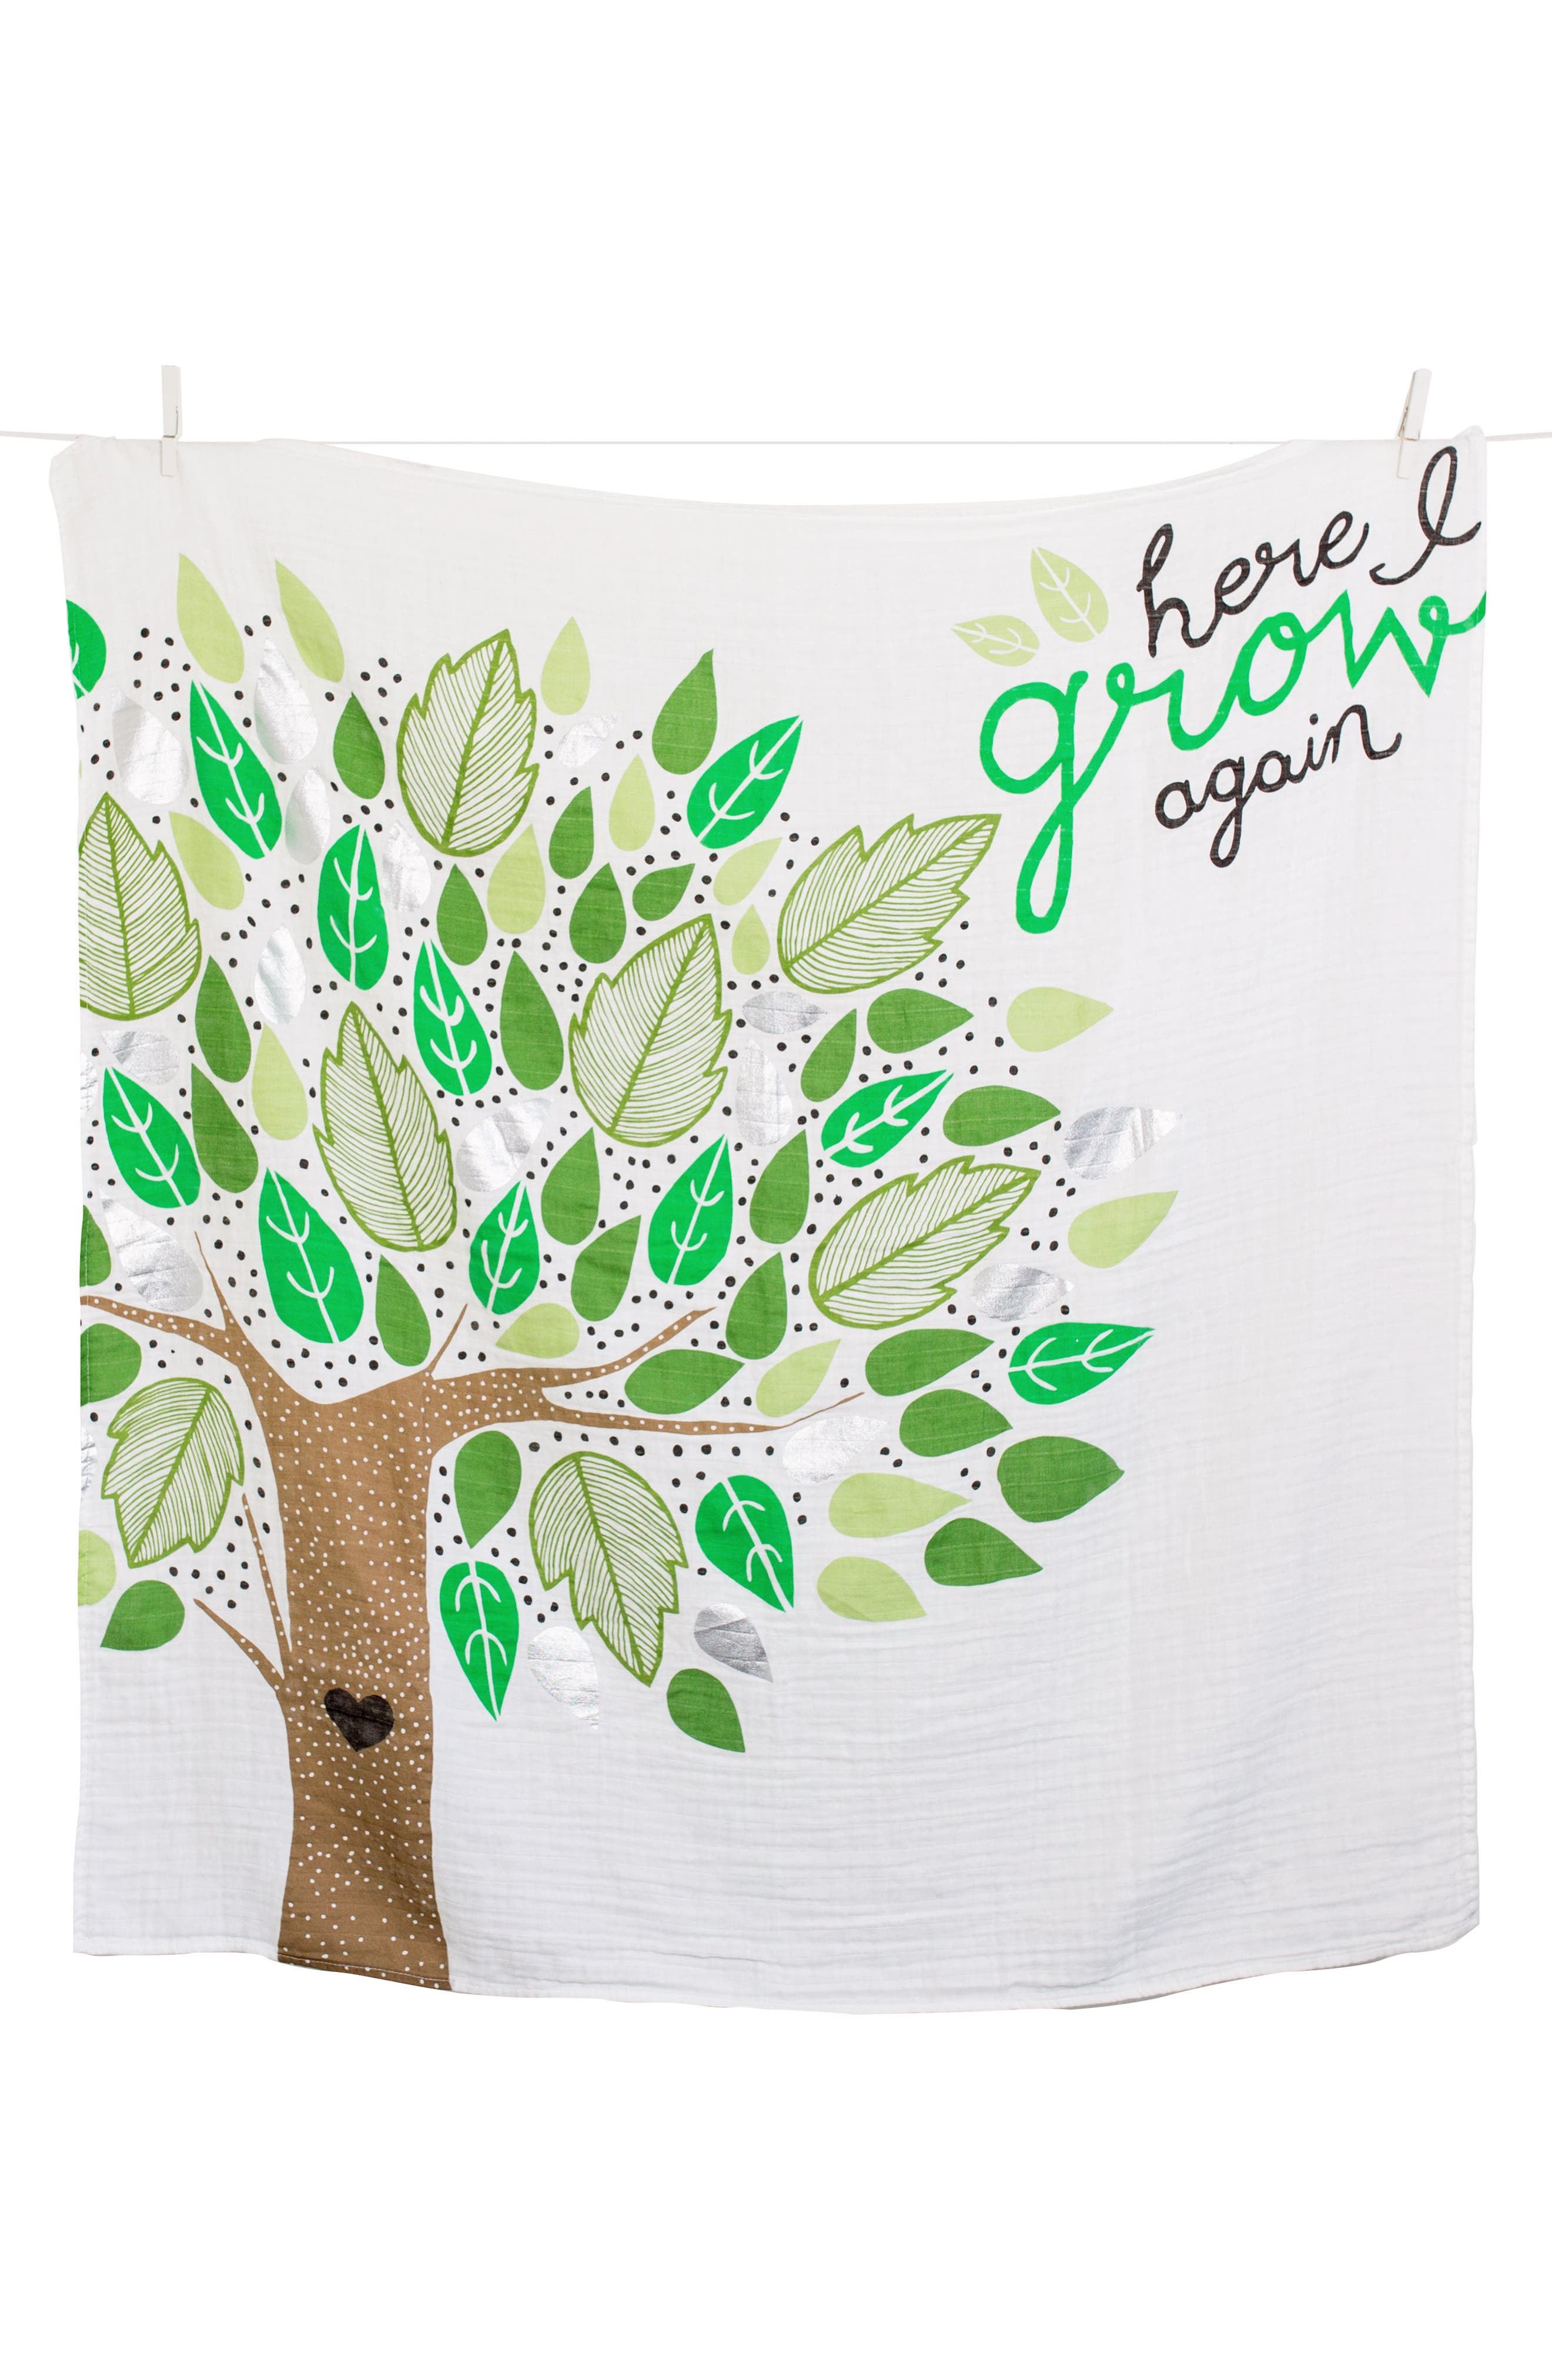 Baby's First Year - Here I Grow Again Muslin Blanket & Milestone Card Set,                             Alternate thumbnail 2, color,                             GREEN